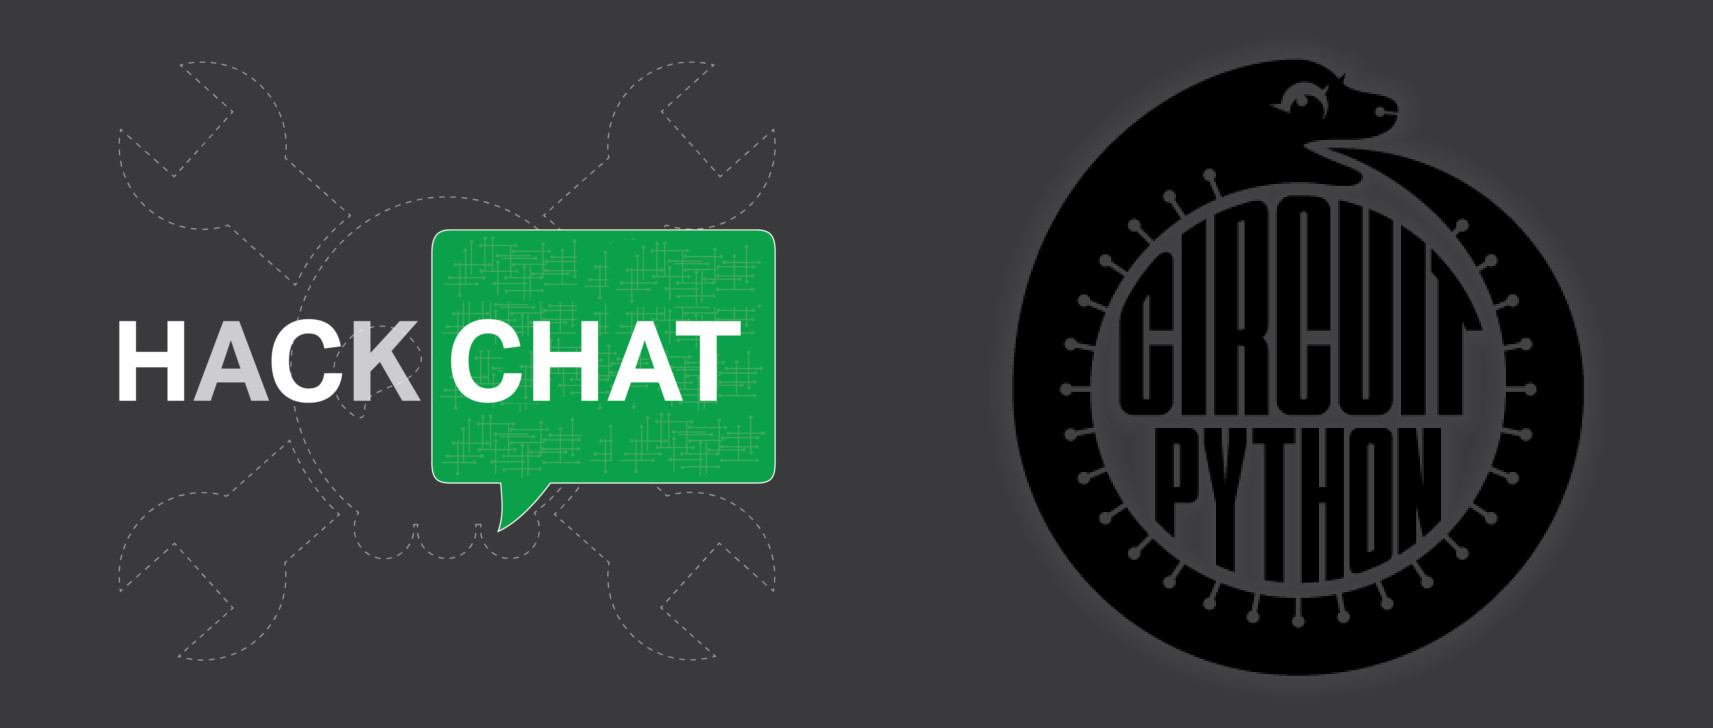 Friday Hack Chat: CircuitPython With Adafruit Engineers | Hackaday